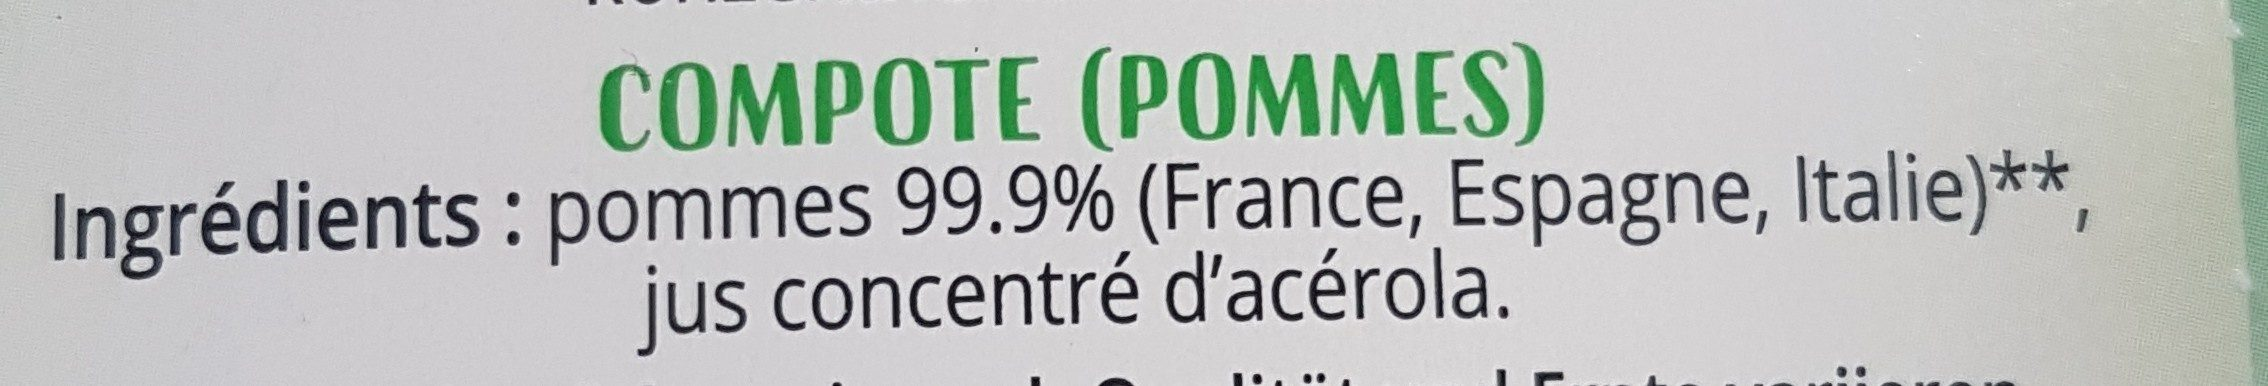 Compote pomme - Ingredients - fr